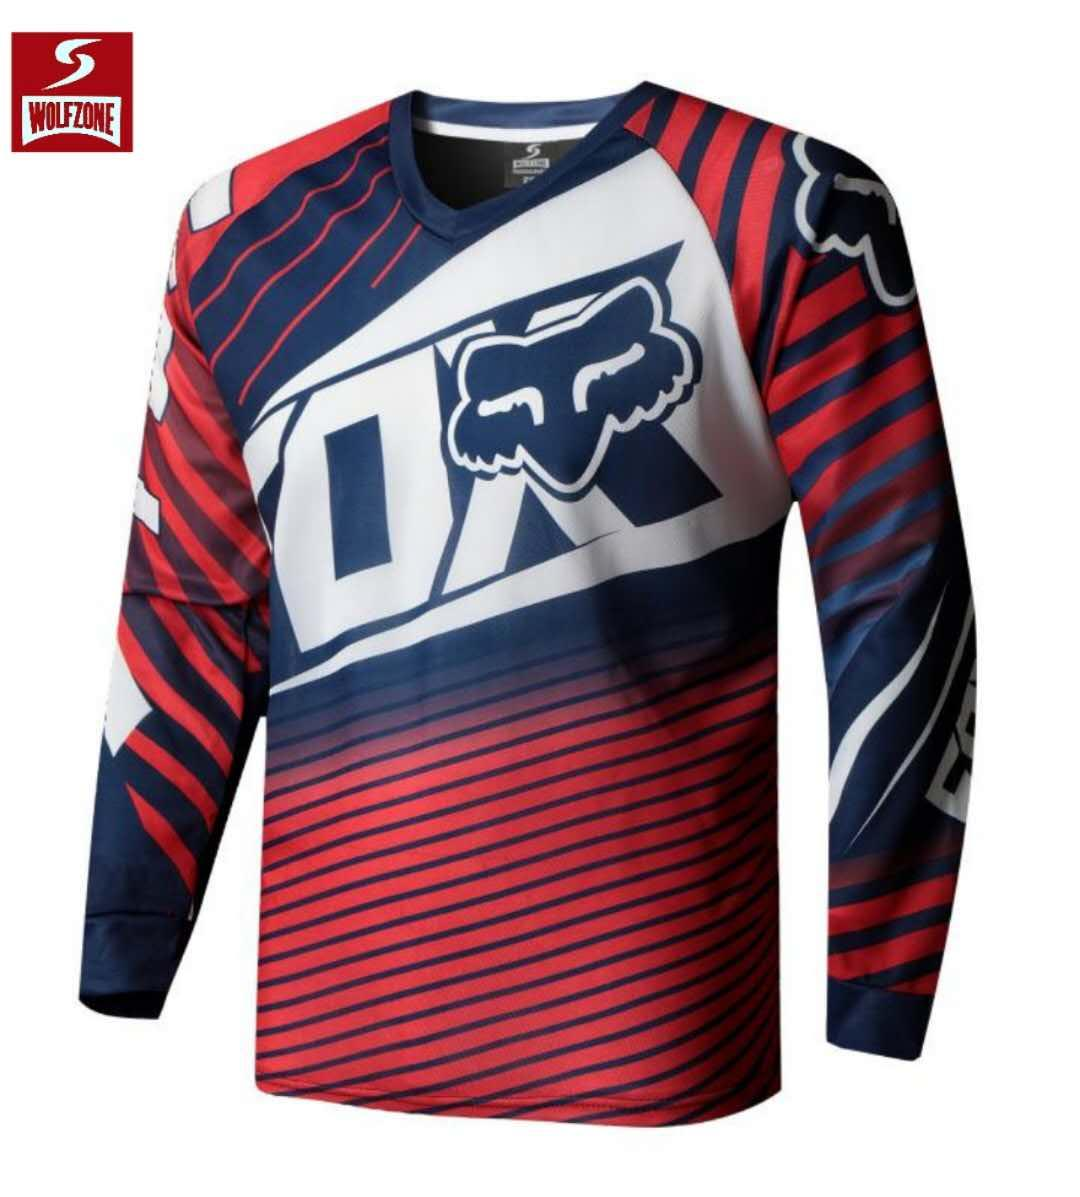 Wolf Zone Spandex Fox Longsleeve Men s Sportswear Quick DryFortress Cycling  Mountain Bike Motocross Motorcycle MTB 0b97b38d0